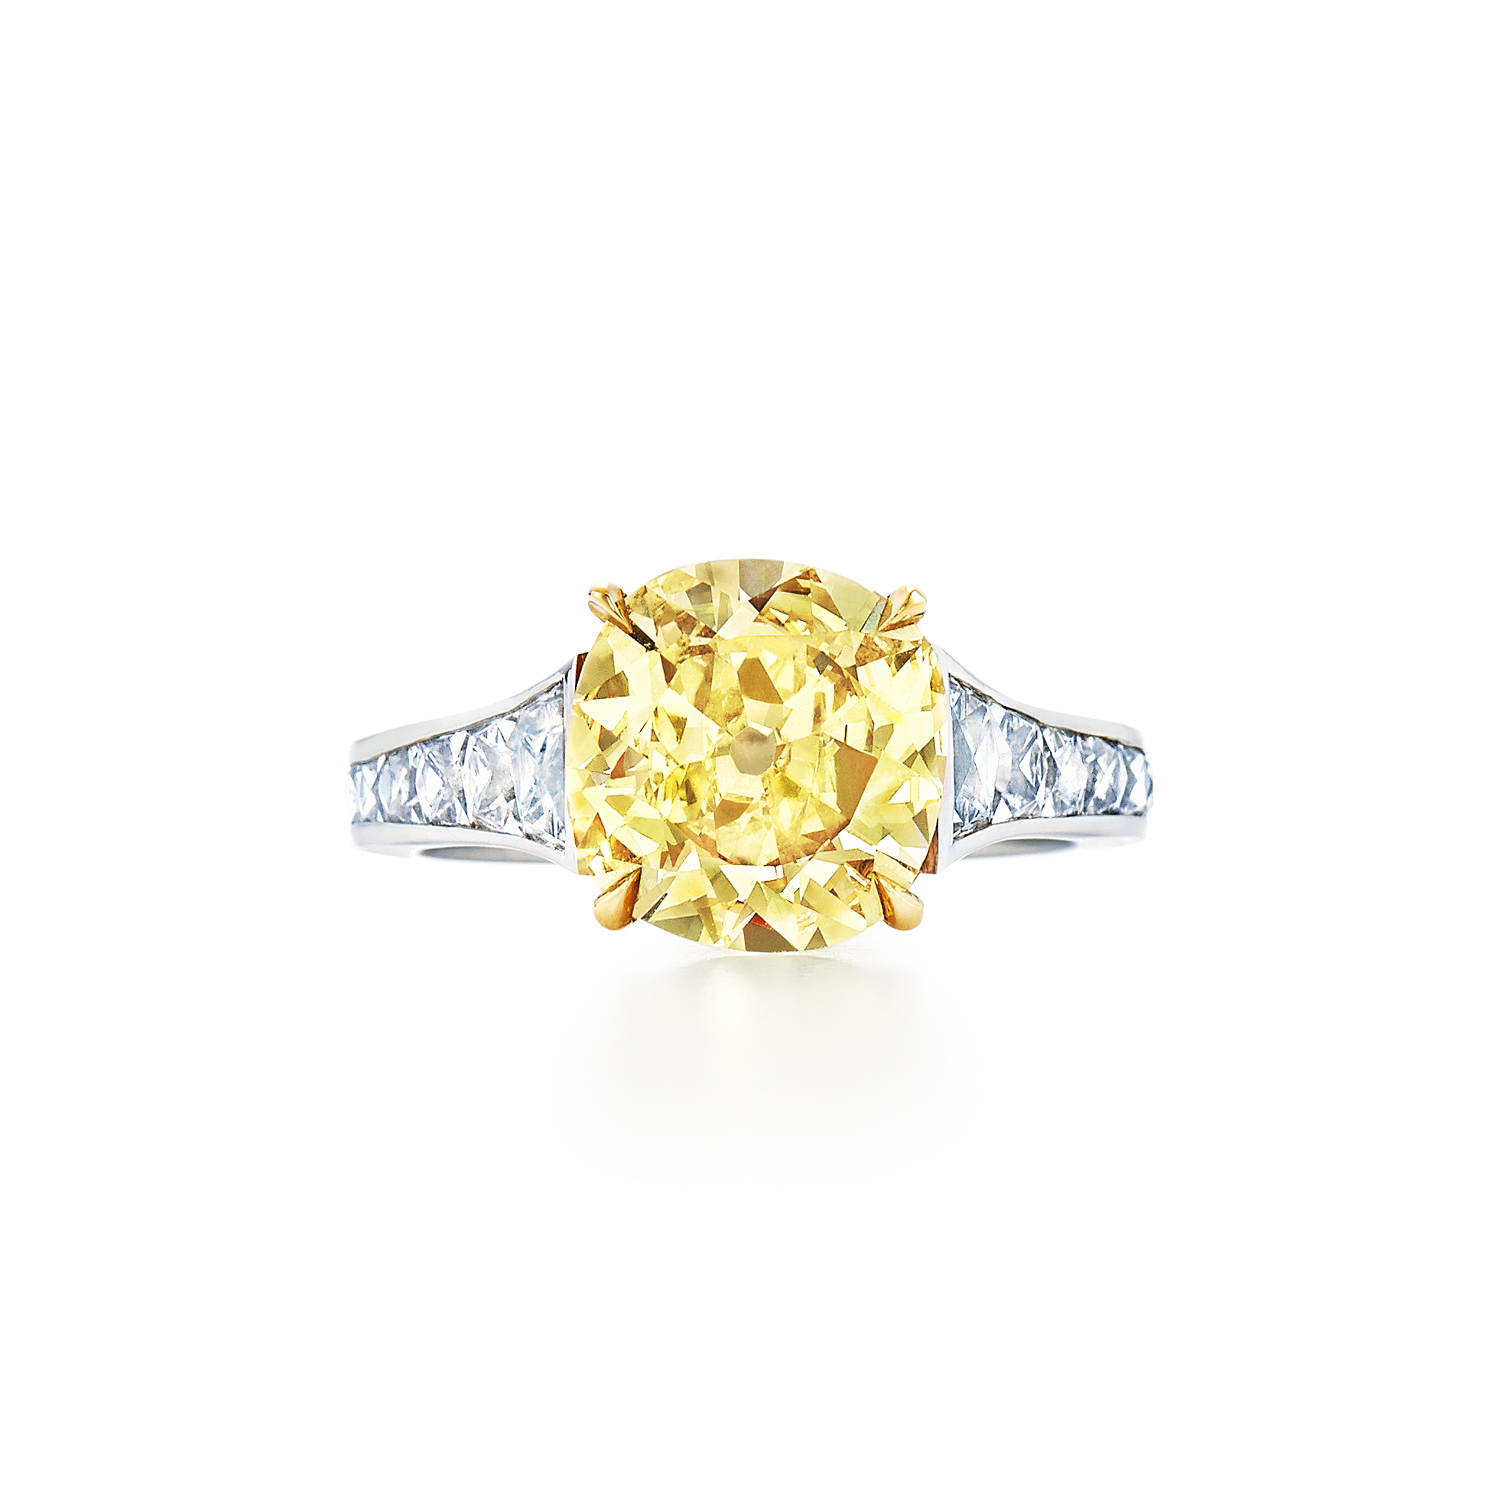 Old Mine Cushion Fancy Intense Yellow Diamond Ring Signed Fred Leighton Style F-29276-FL-0-0